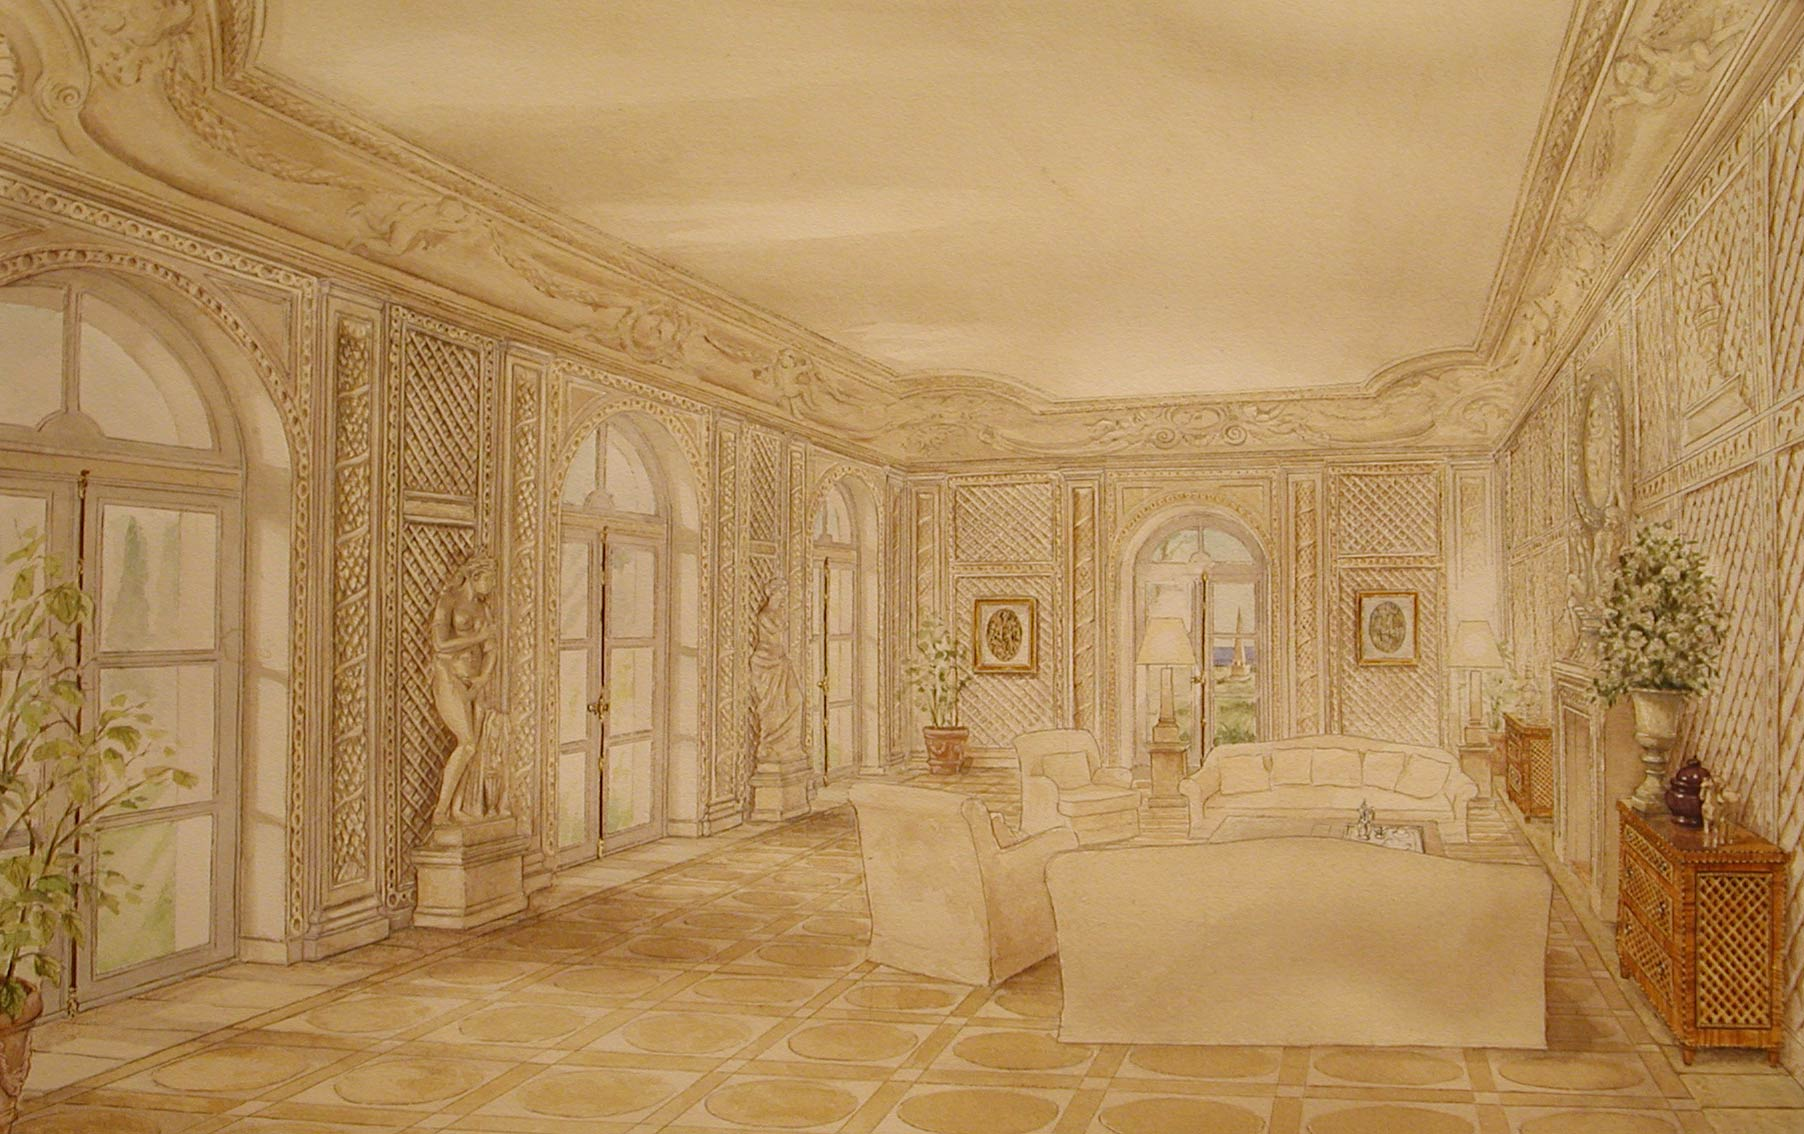 Watercolor - preview of a futur decor - Poolhouse on French Riviera